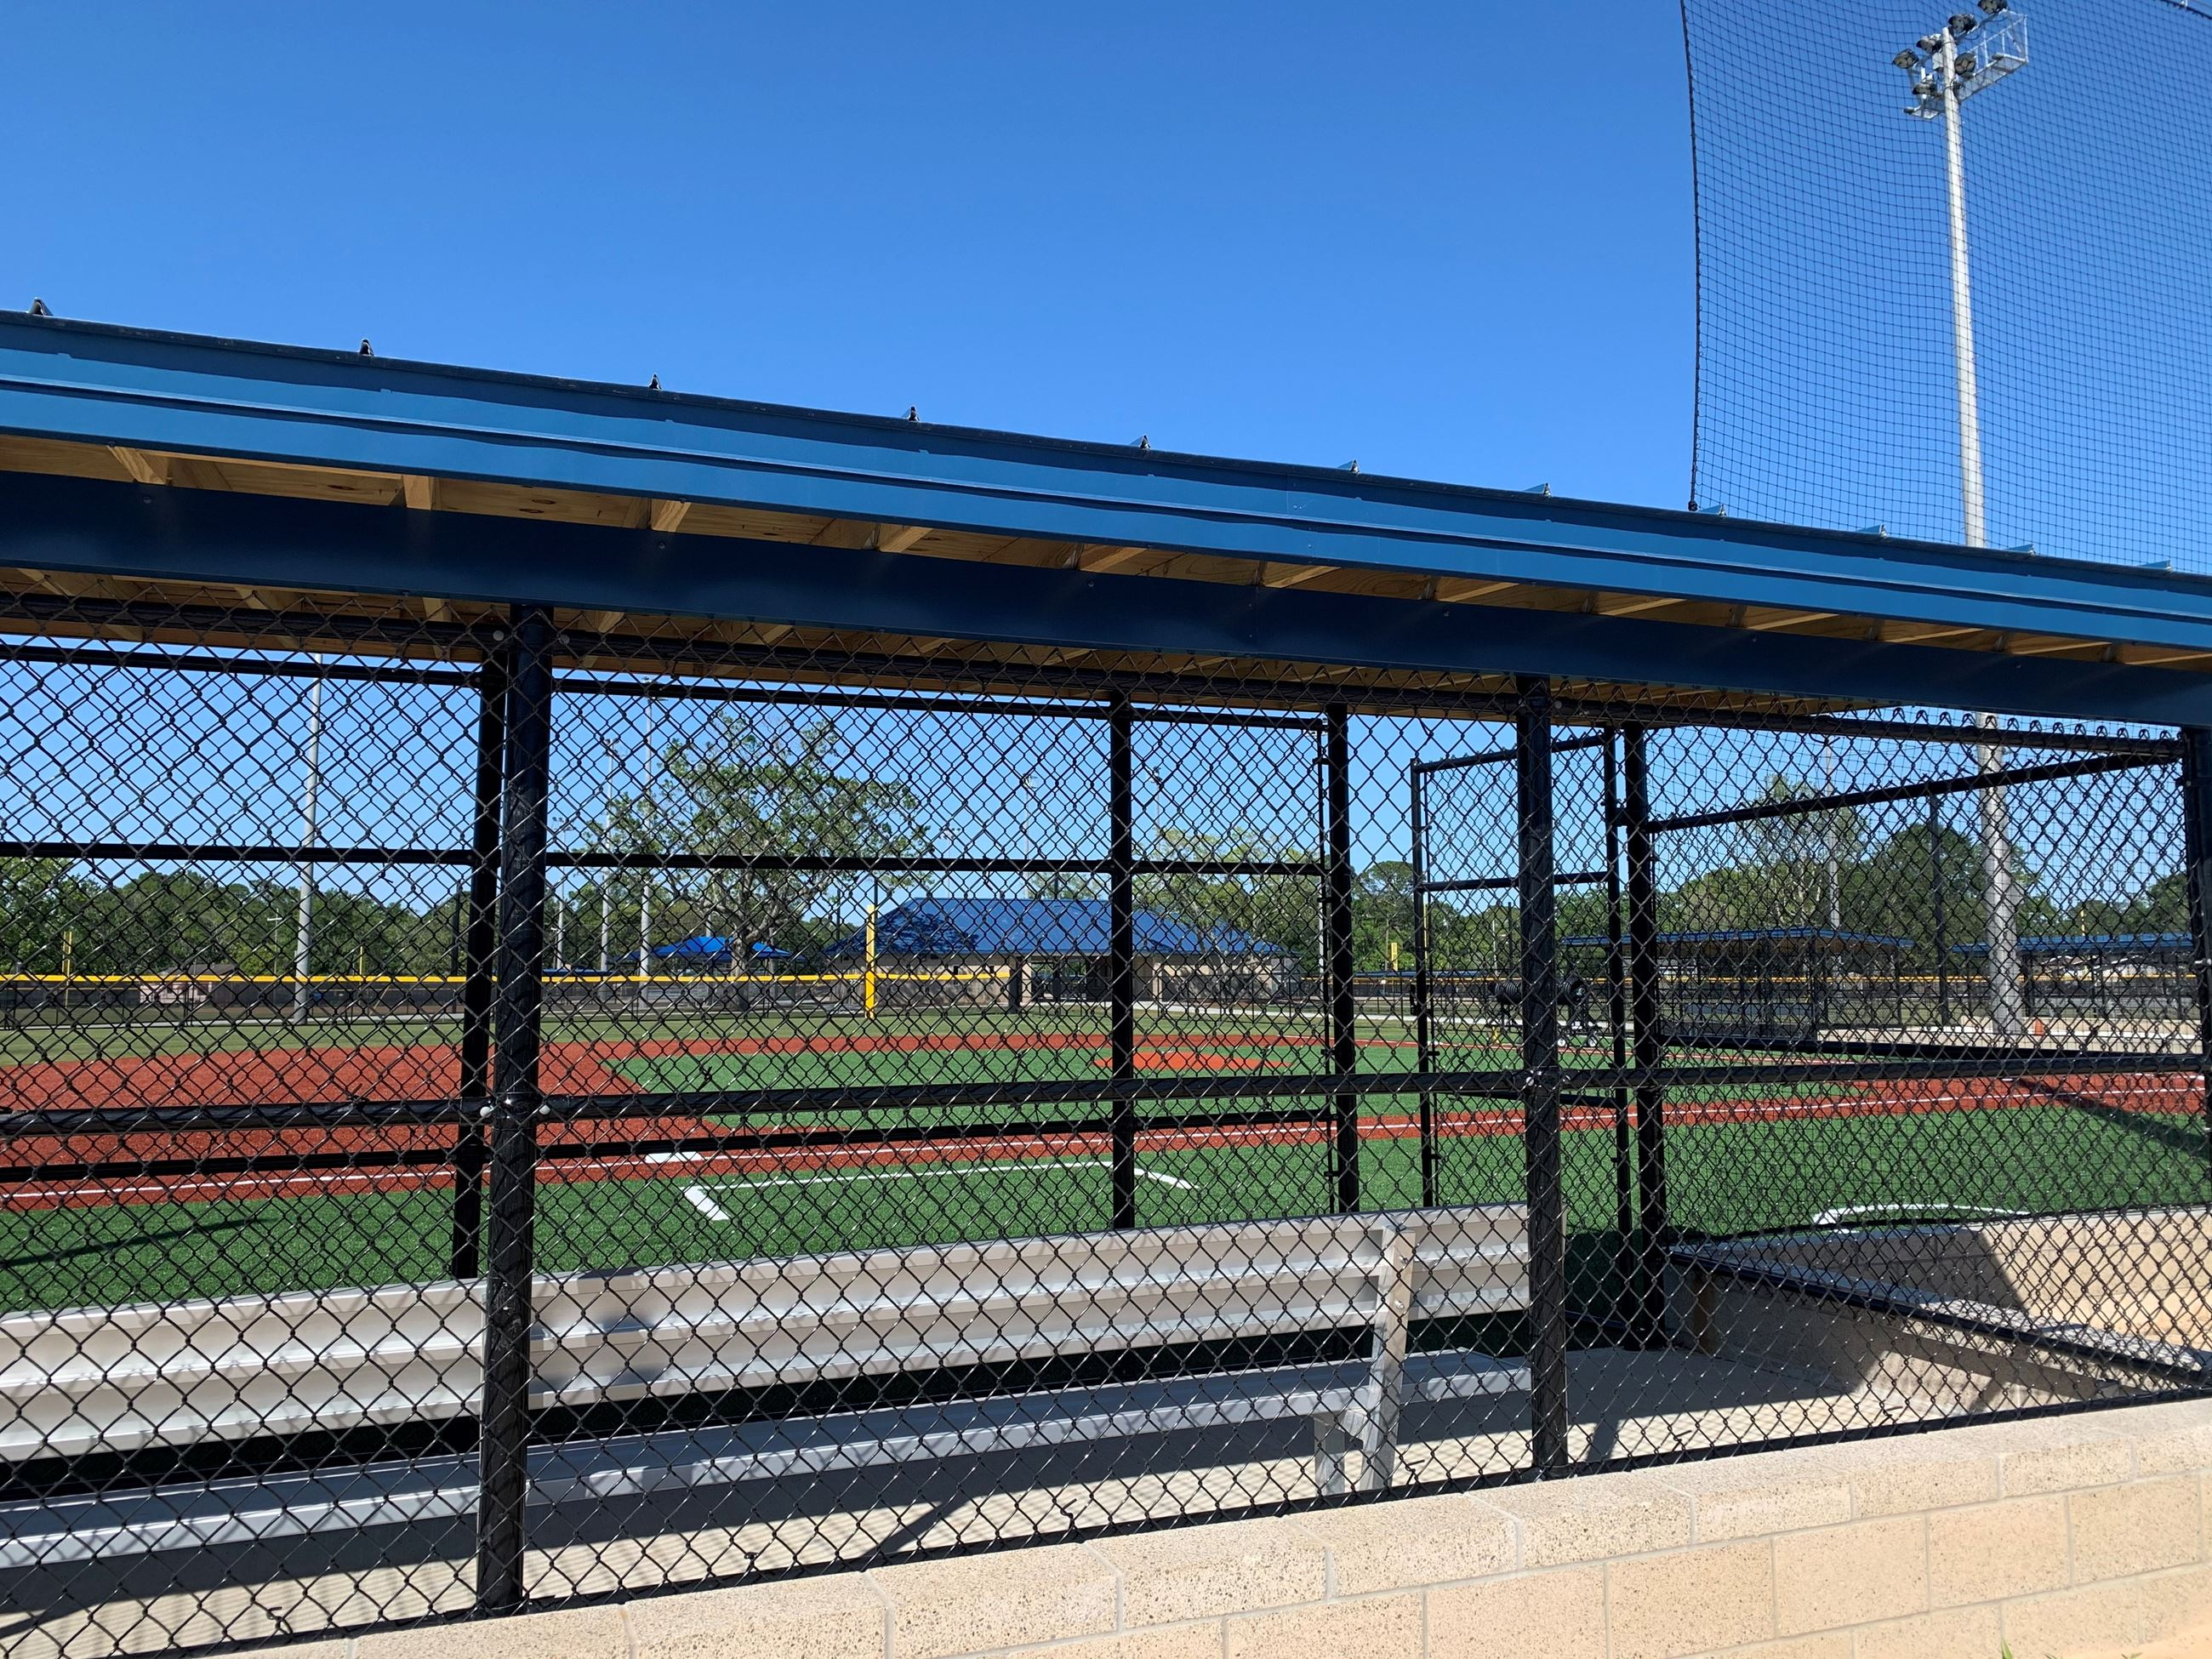 Dugout to turf field